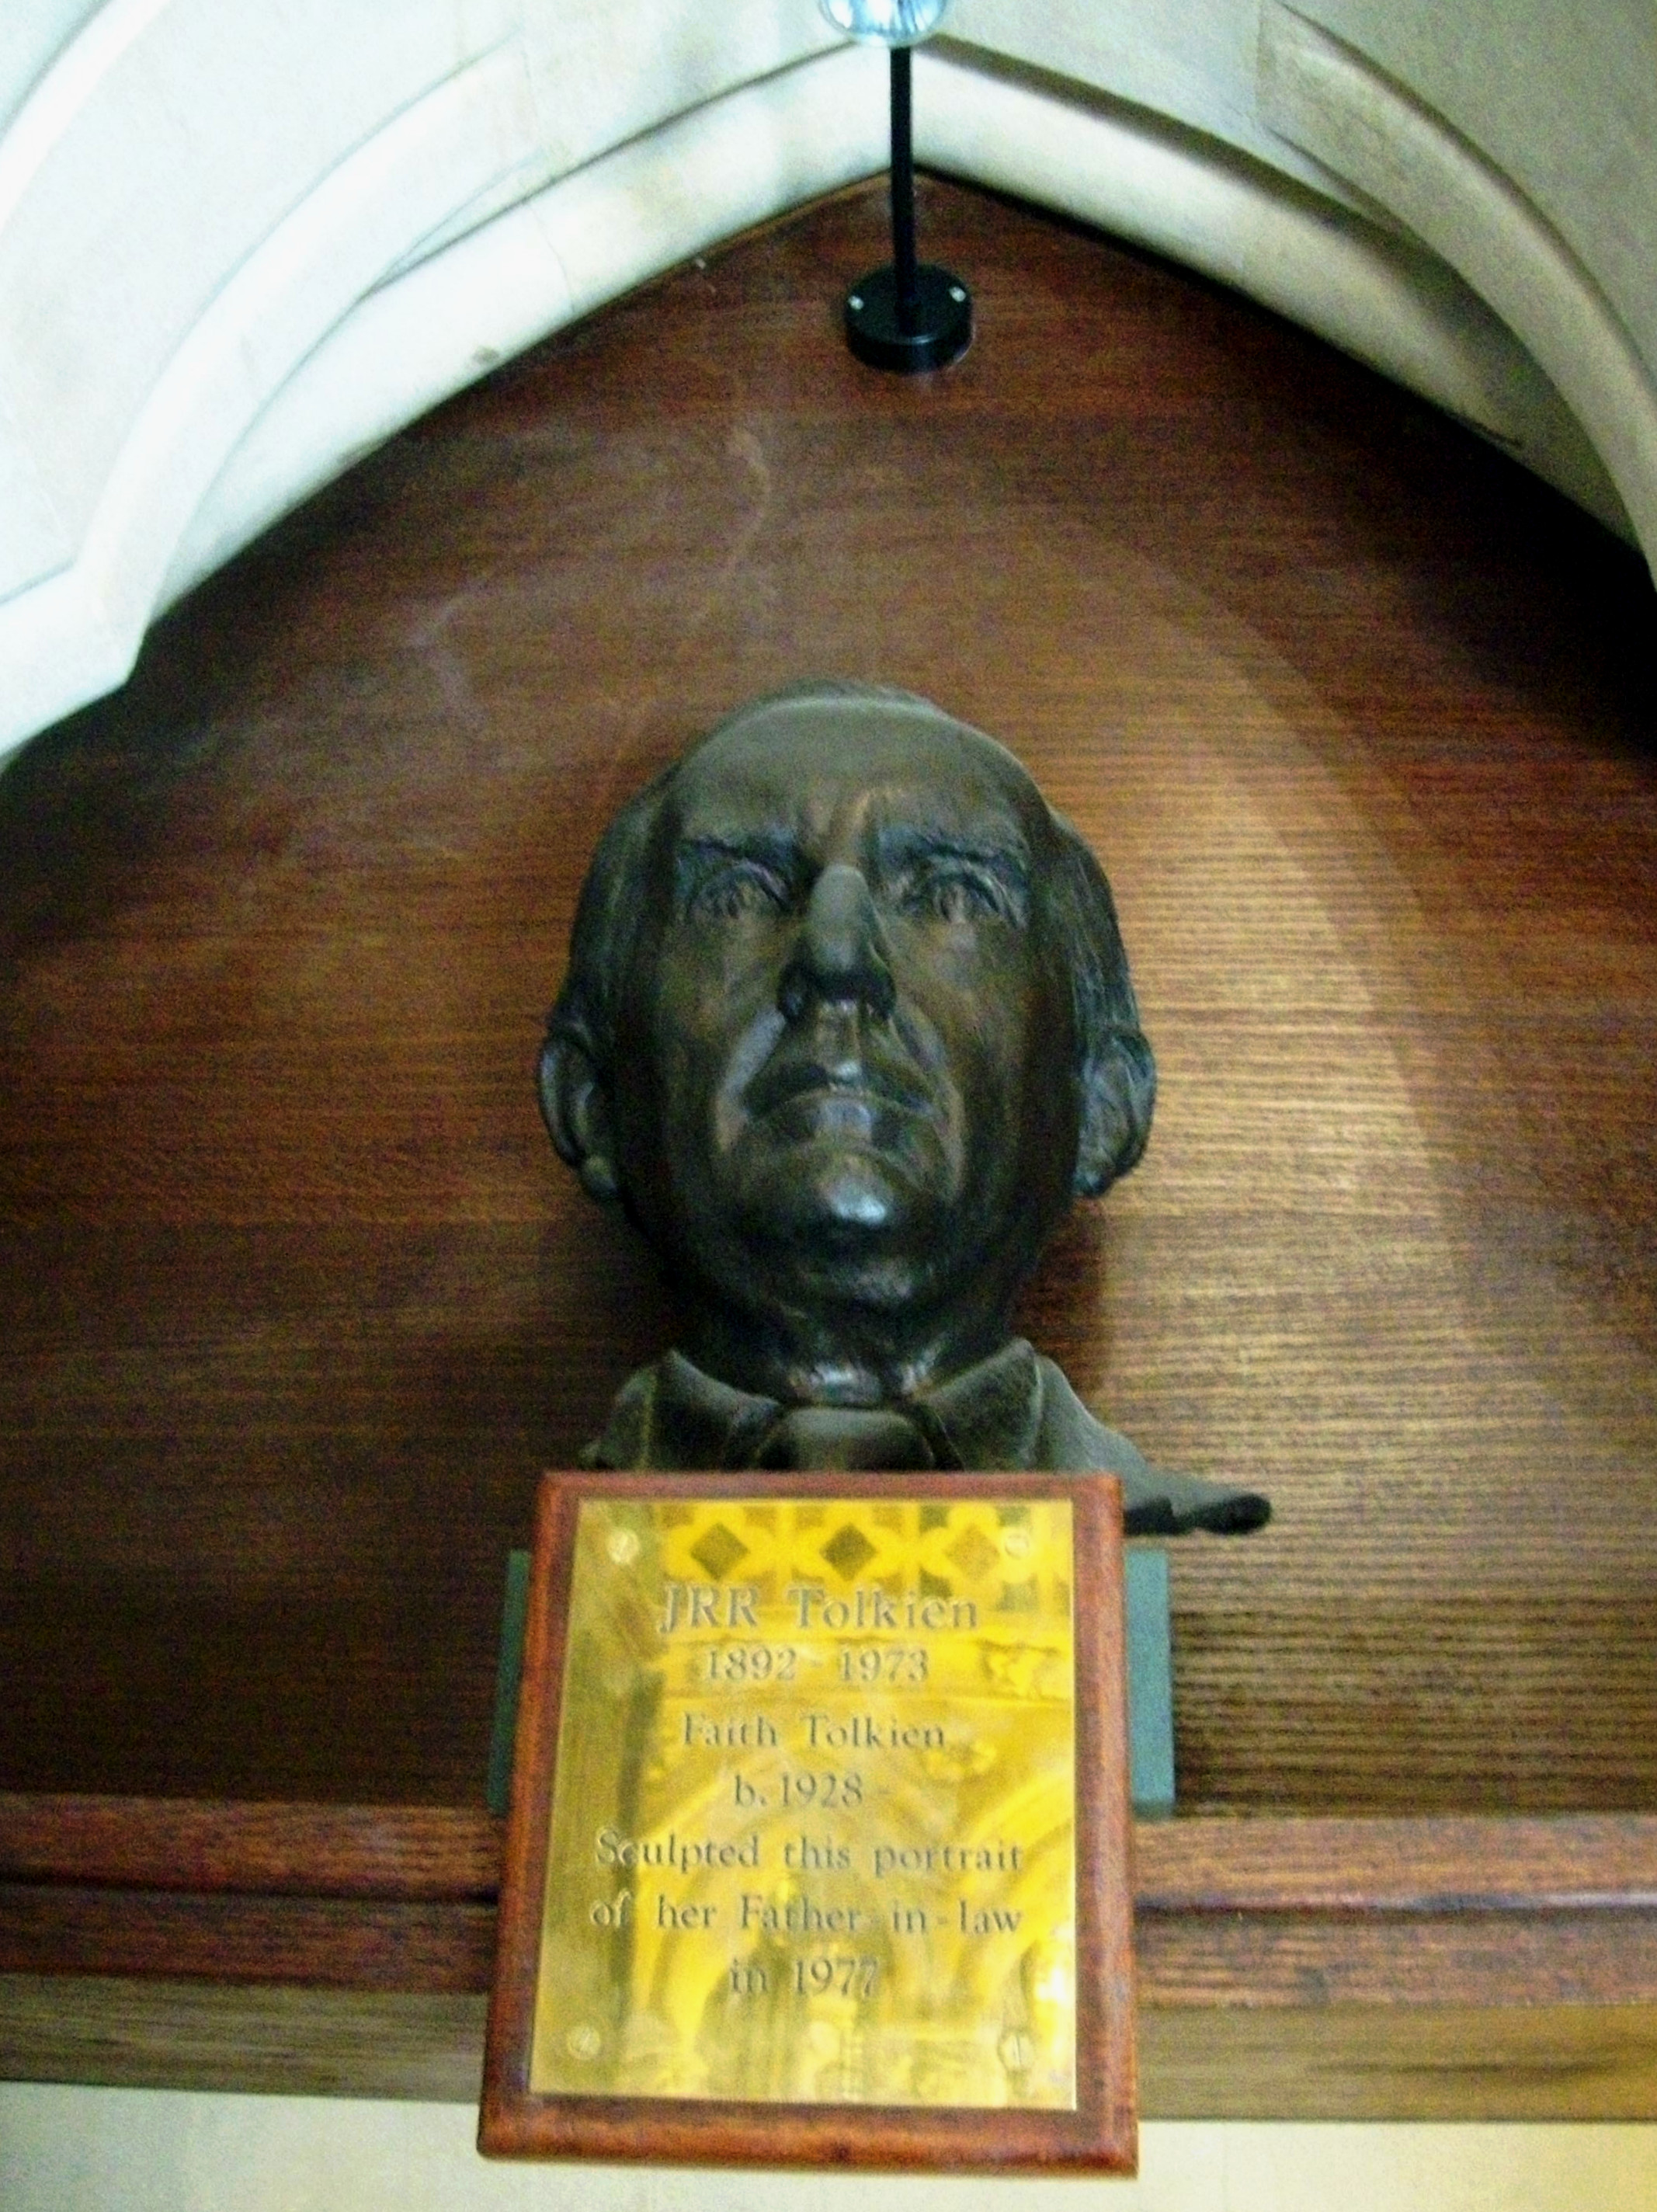 "This bust of the author JRR Tolkien is located high on the wall close to the entrance to Exeter Colege Chapel, Oxford. The inscription reads: JRR Tolkien 1892 - 1973 Faith Tolkien b.1928 Sculpted this portrait of her Father-in-law in 1977. Renowned for his high fantasy novels; The Hobbit & Lord of the Rings Tolkien graduated from Exeter College with a first class honours degree in English Language and Literature and became a Professor at Oxford's Pembroke College. He was a member of ""The Inklings"" as was his close friend C.S.Lewis."